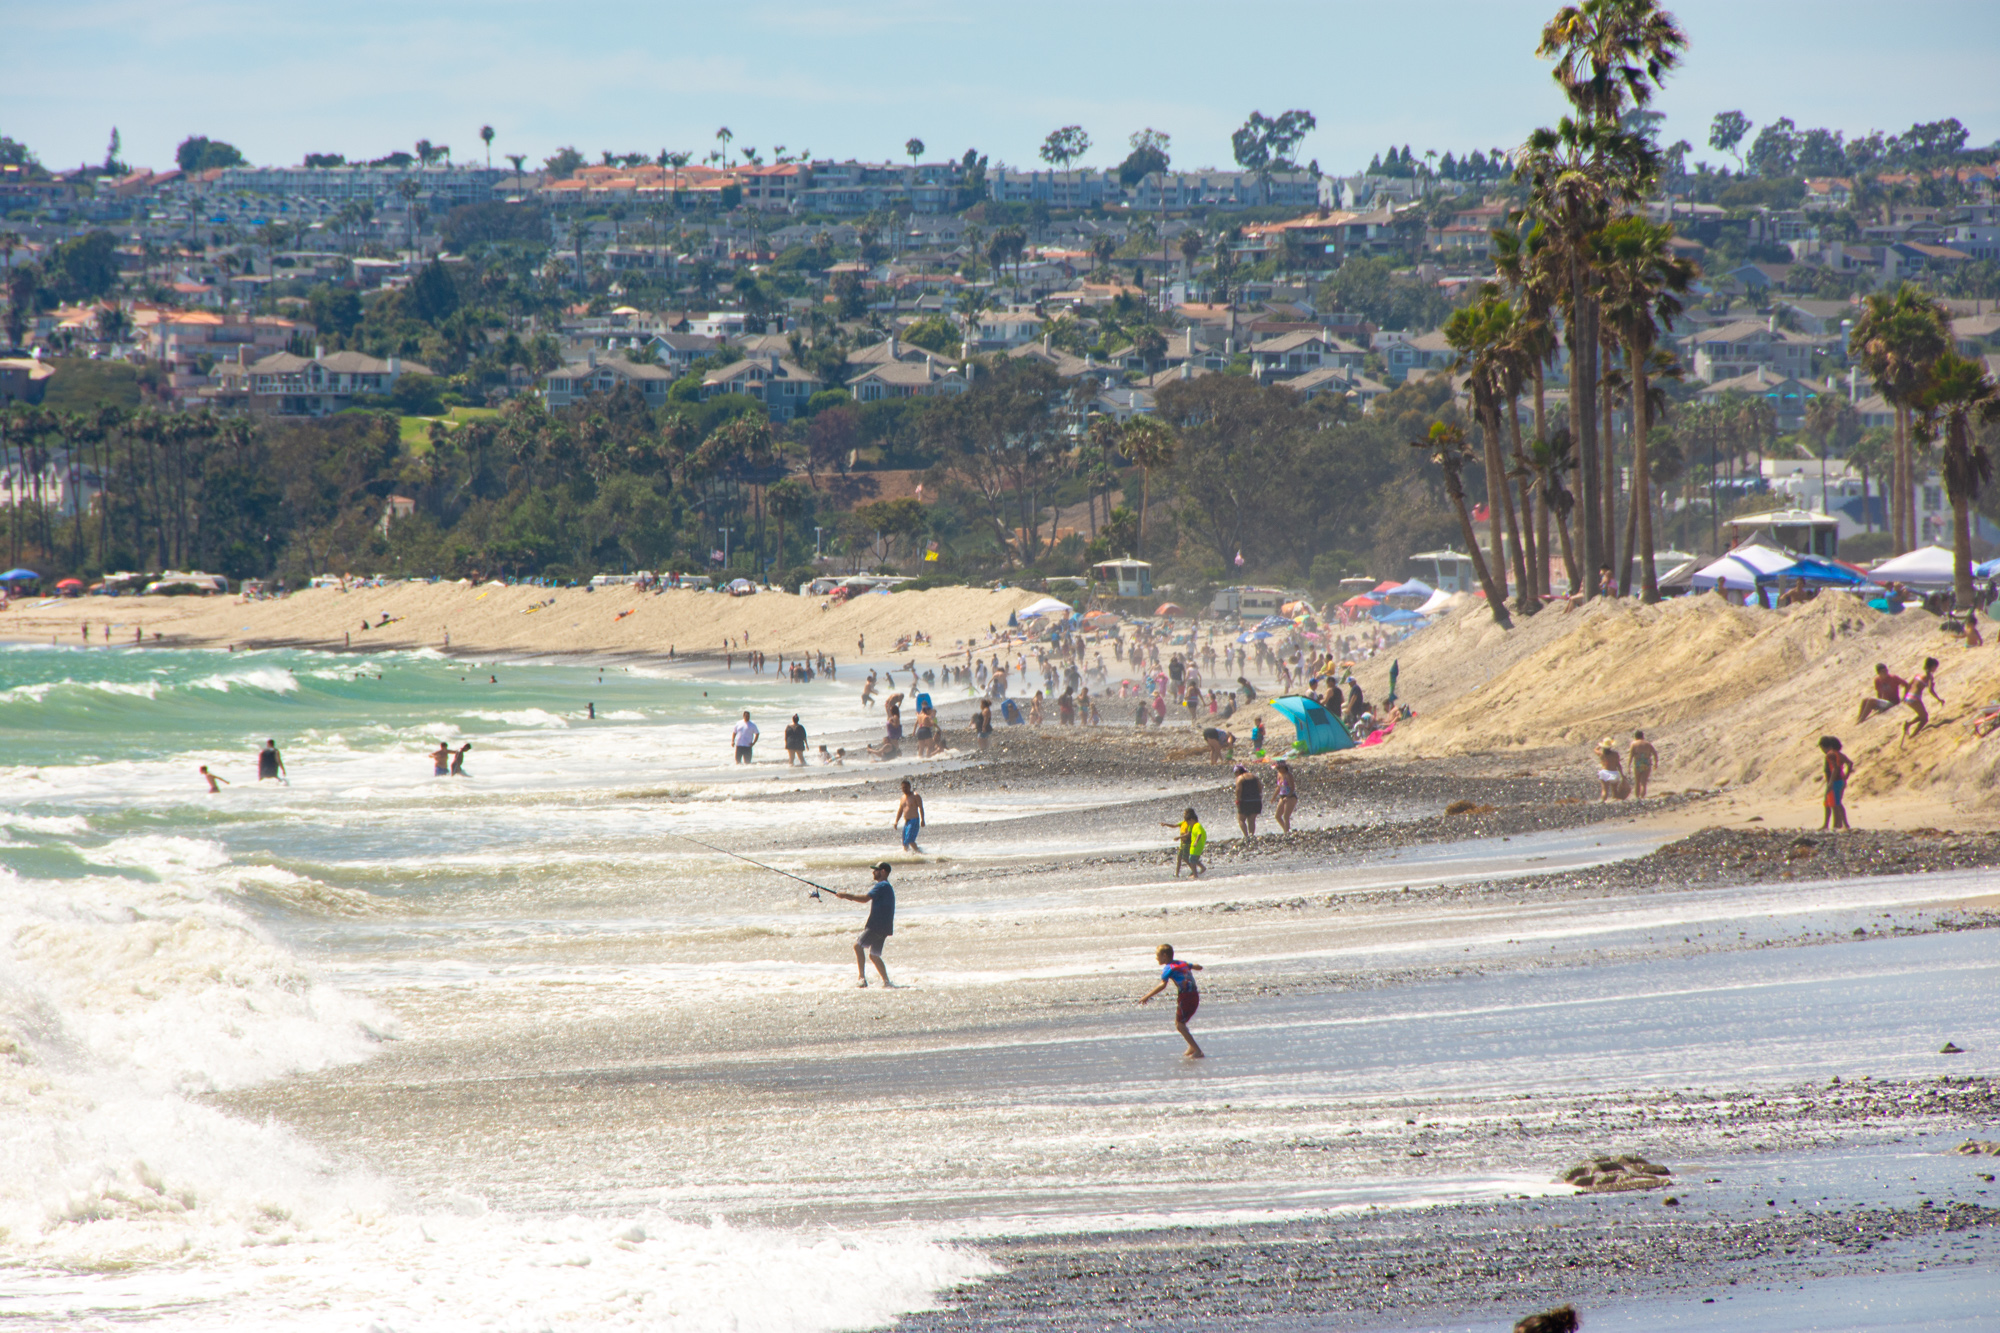 Enjoy a beach day at Capistrano